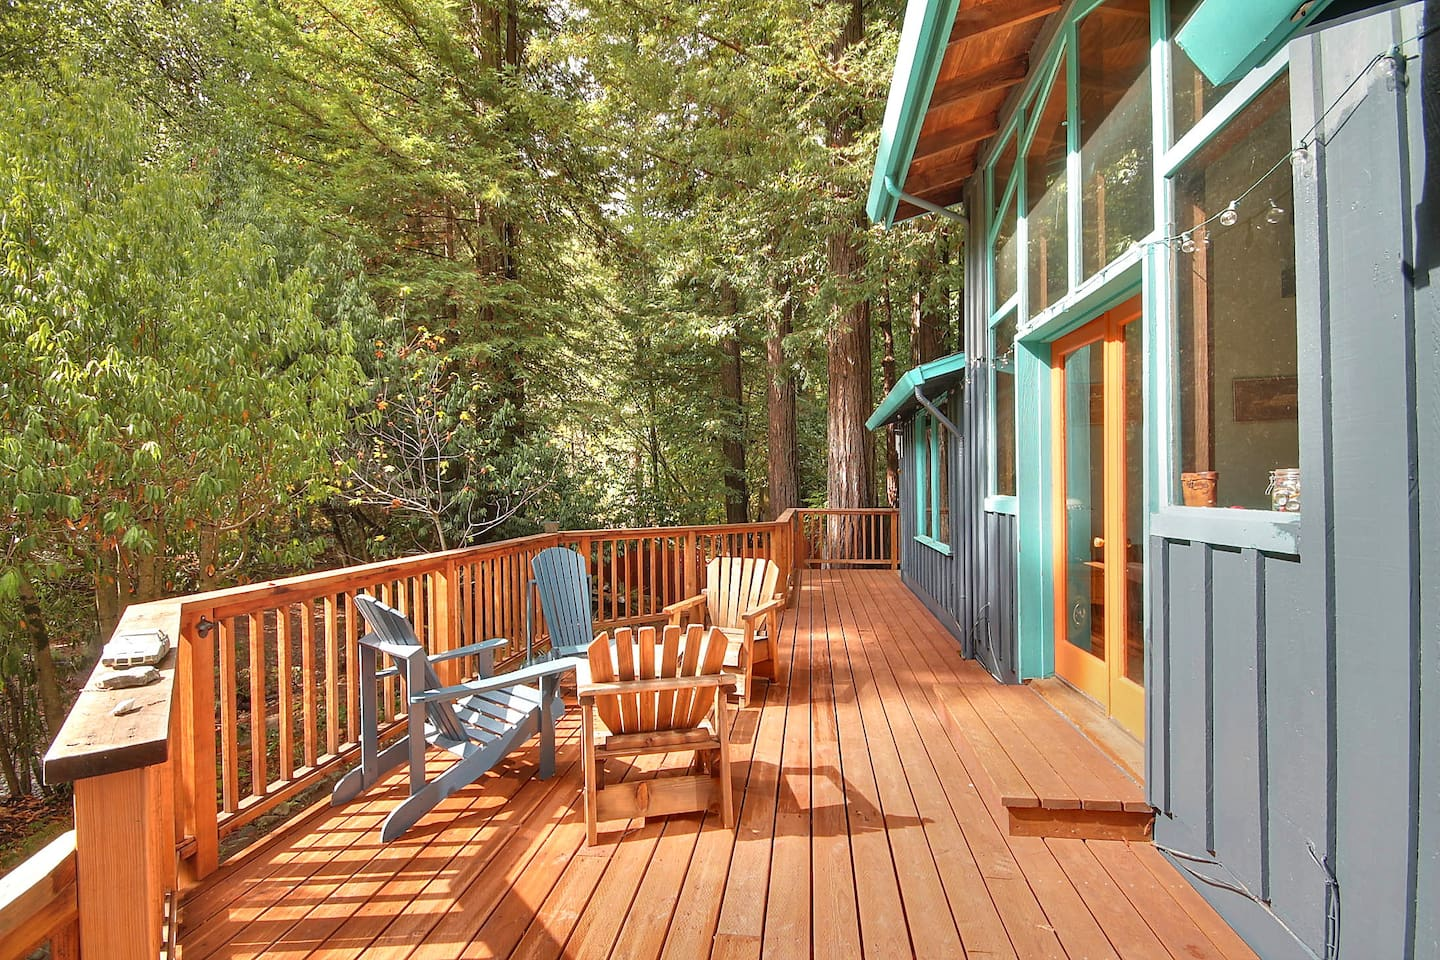 enjoy the deck for morning coffee or an evening glass of wine.